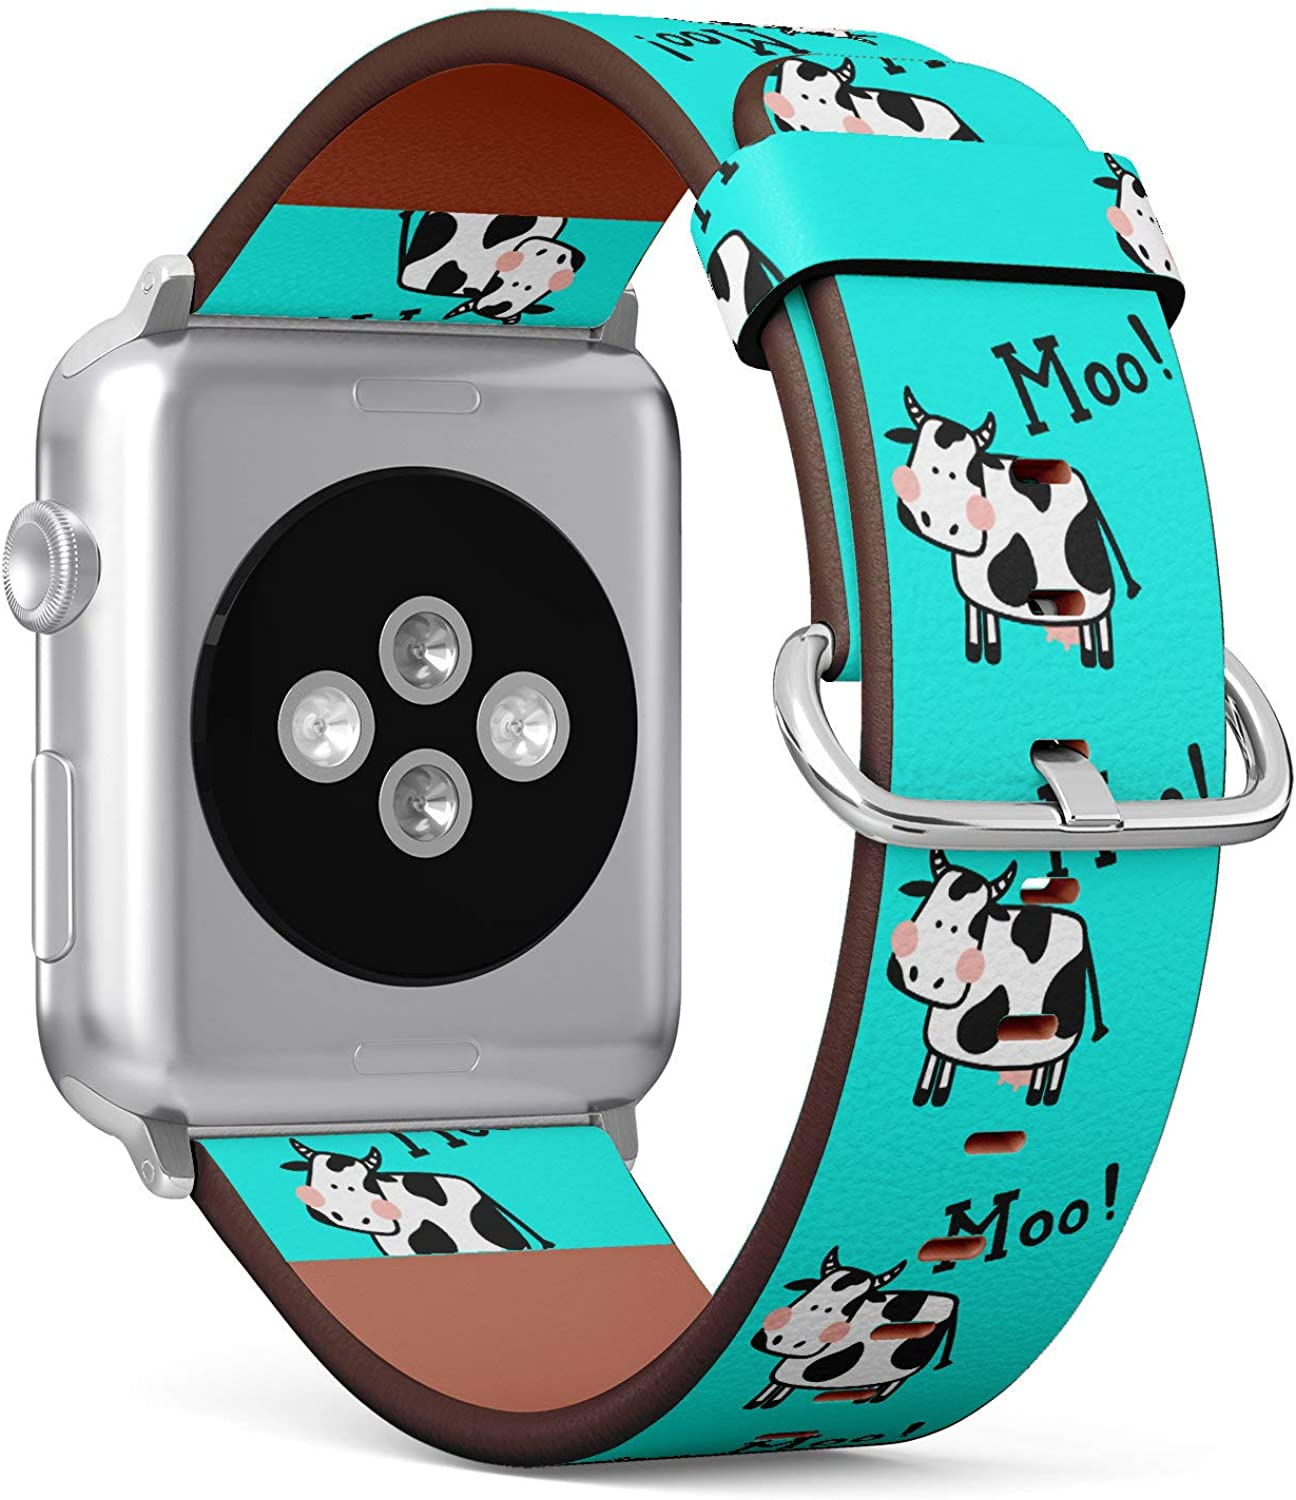 (Cute Milk Cow Moo Turquoise Background) Patterned Leather Wristband Strap for Apple Watch Series 4/3/2/1 gen,Replacement for iWatch 38mm / 40mm Bands